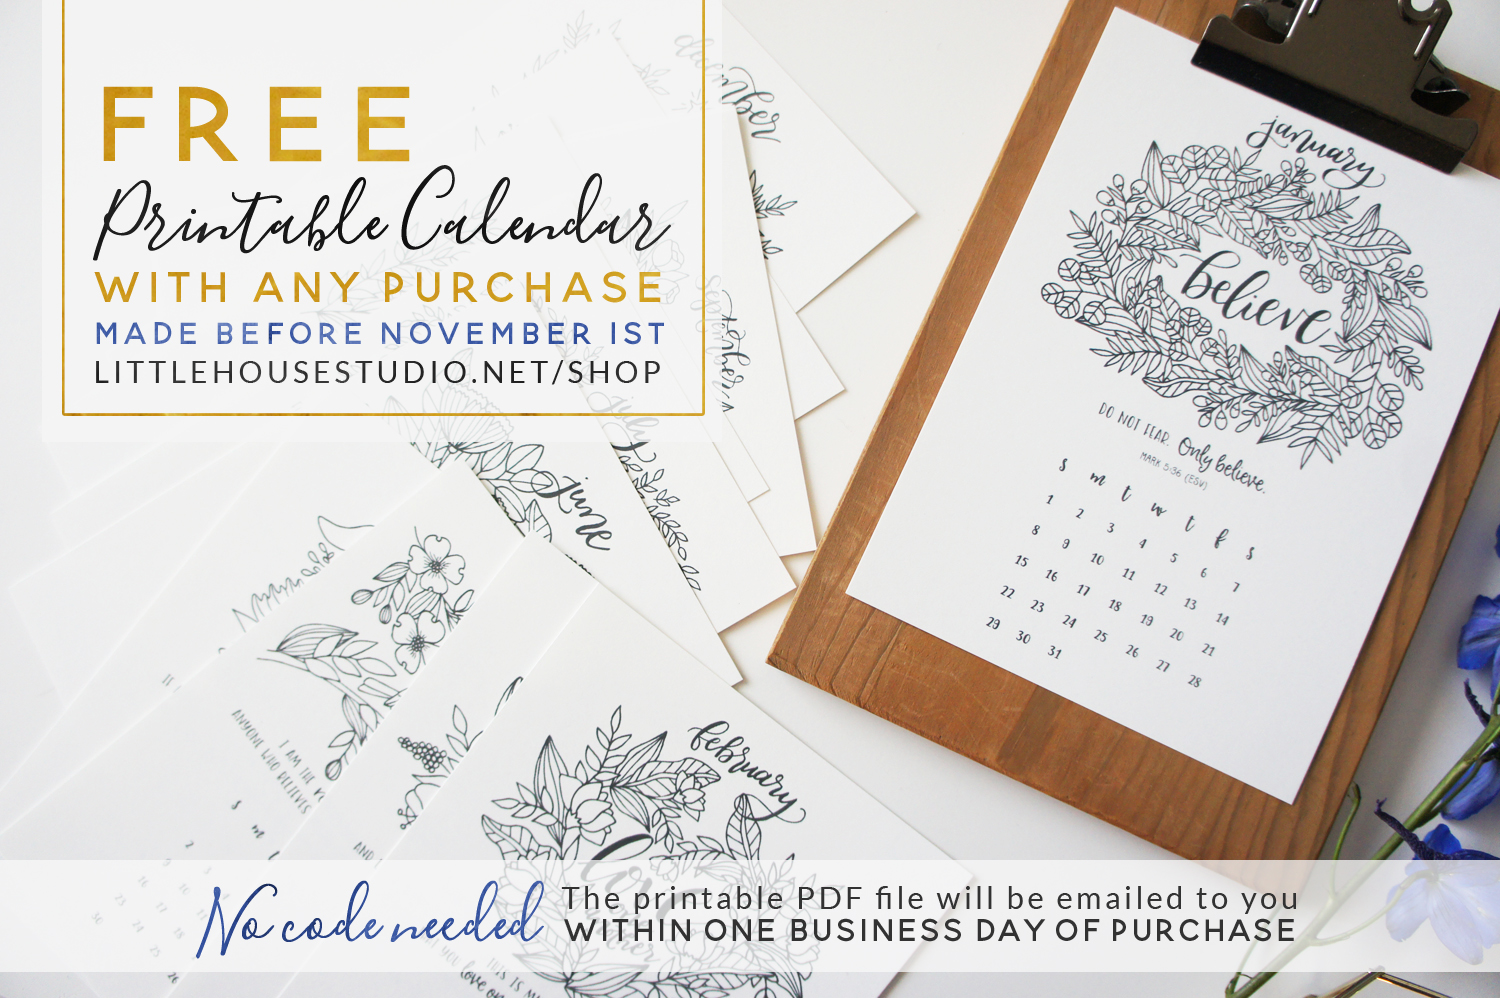 Also, ALL orders (any amount) will receive a bonus FREE 5x7 Coloring Calendar (pictured). No code needed! Just place an order and the printable PDF calendar will be delivered within 1 business day to the email address you provide at checkout.